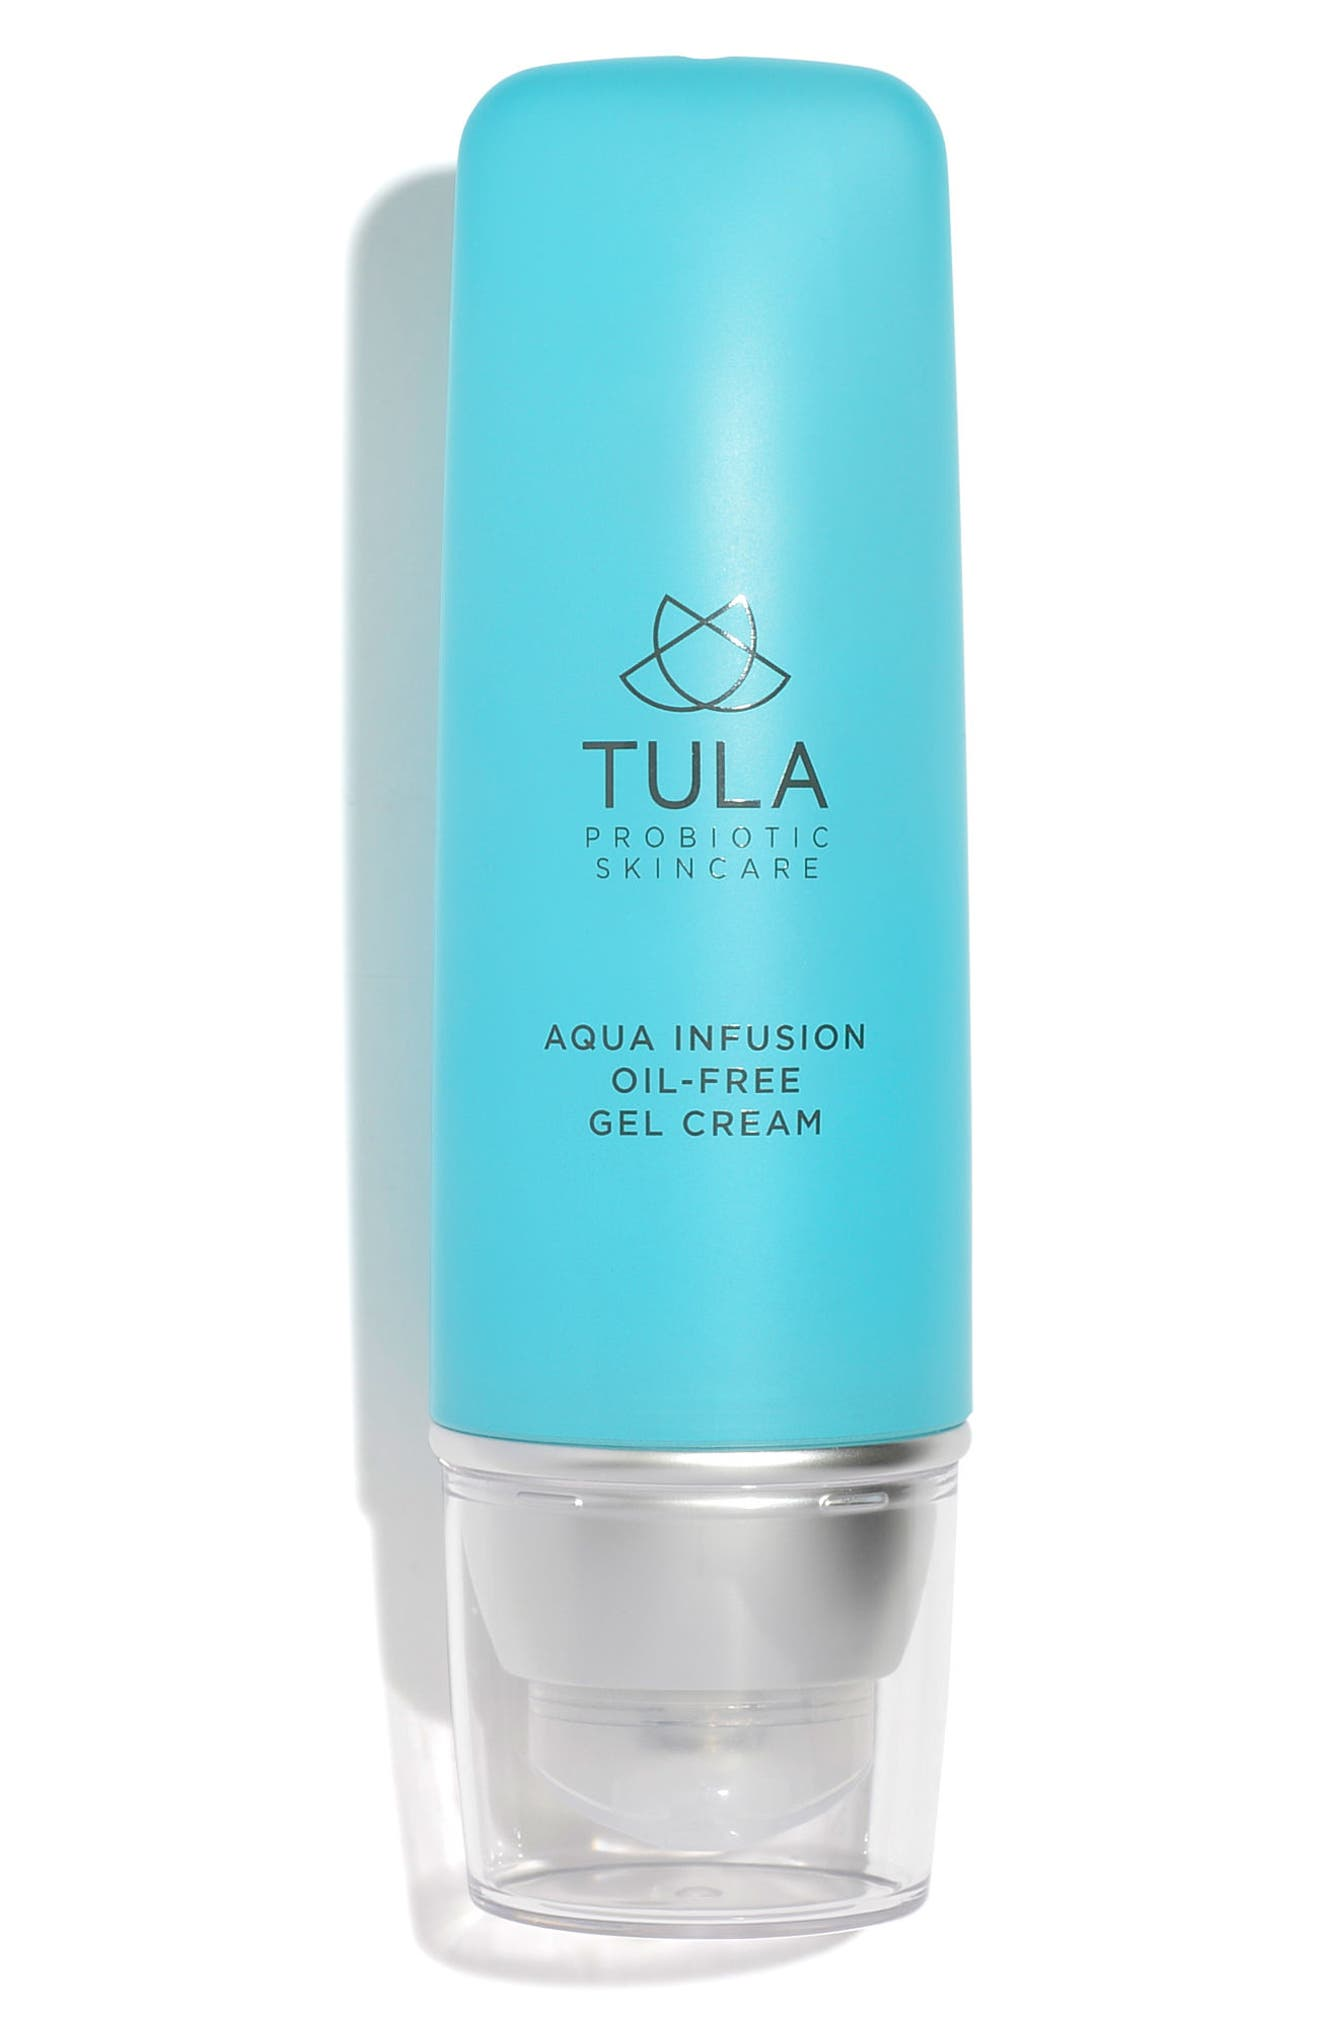 Main Image - Tula Probiotic Skincare Aqua Infusion Oil-Free Gel Cream